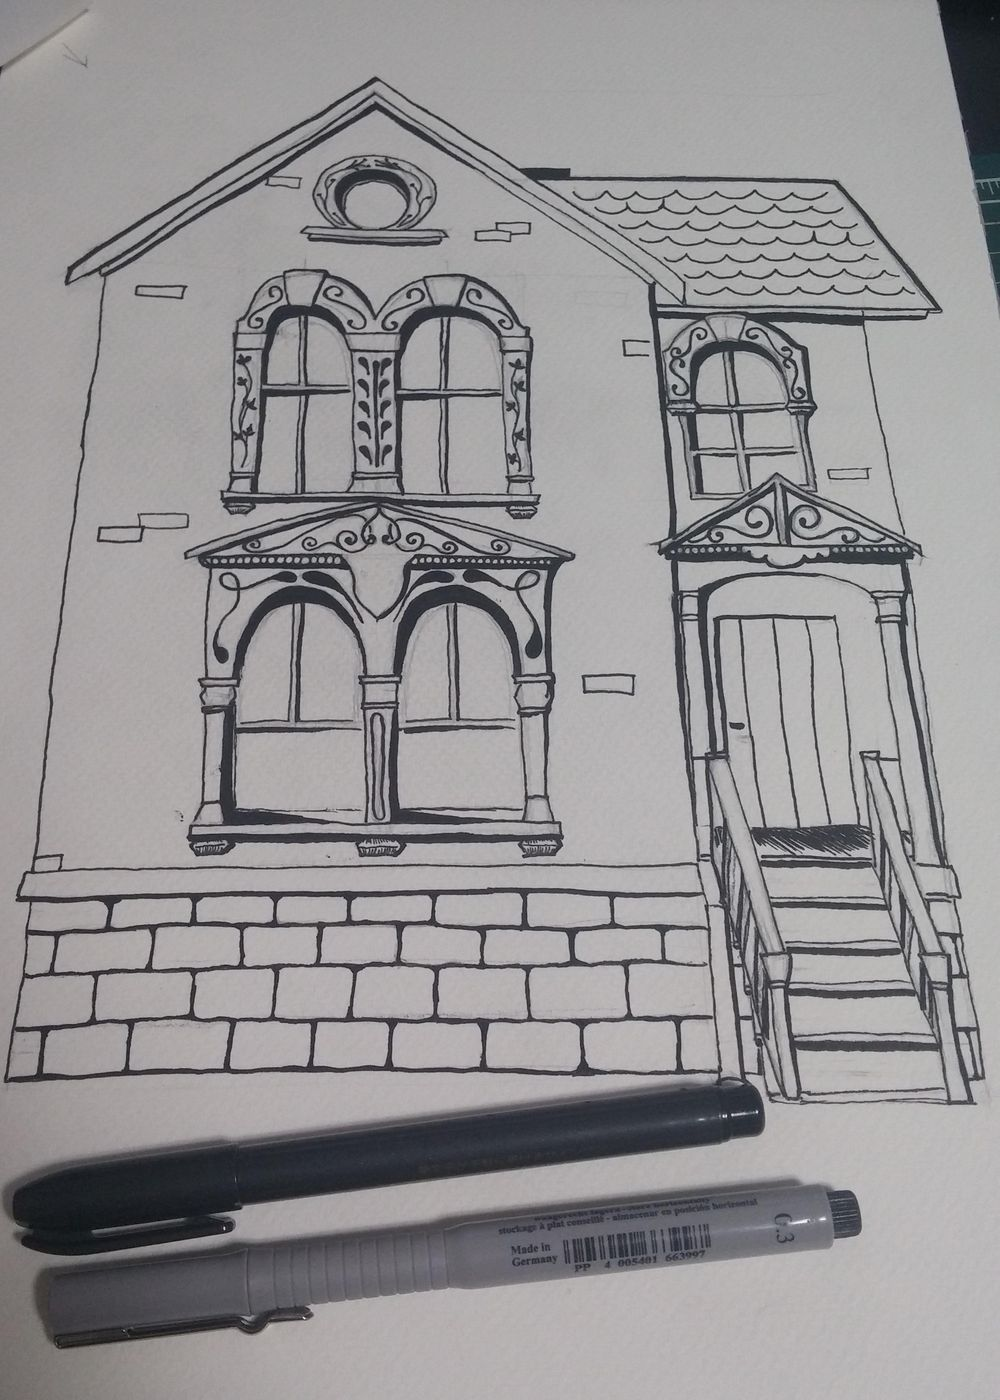 A Restoration of Old and Abandoned Houses - image 3 - student project